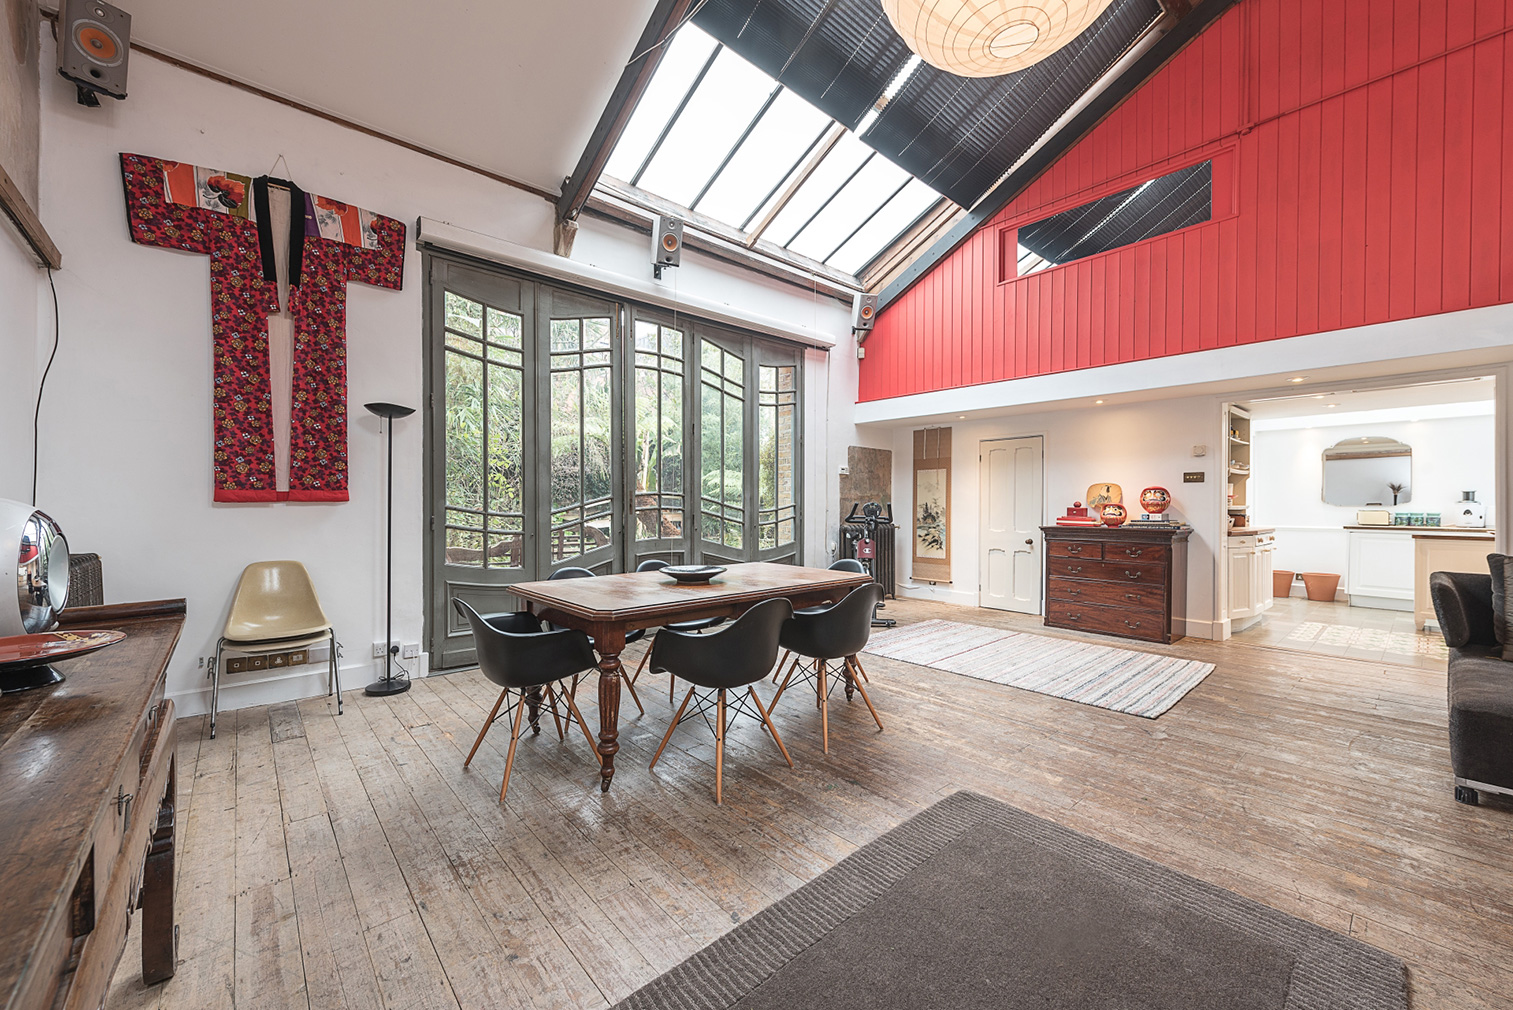 Former artist's studio for sale in London